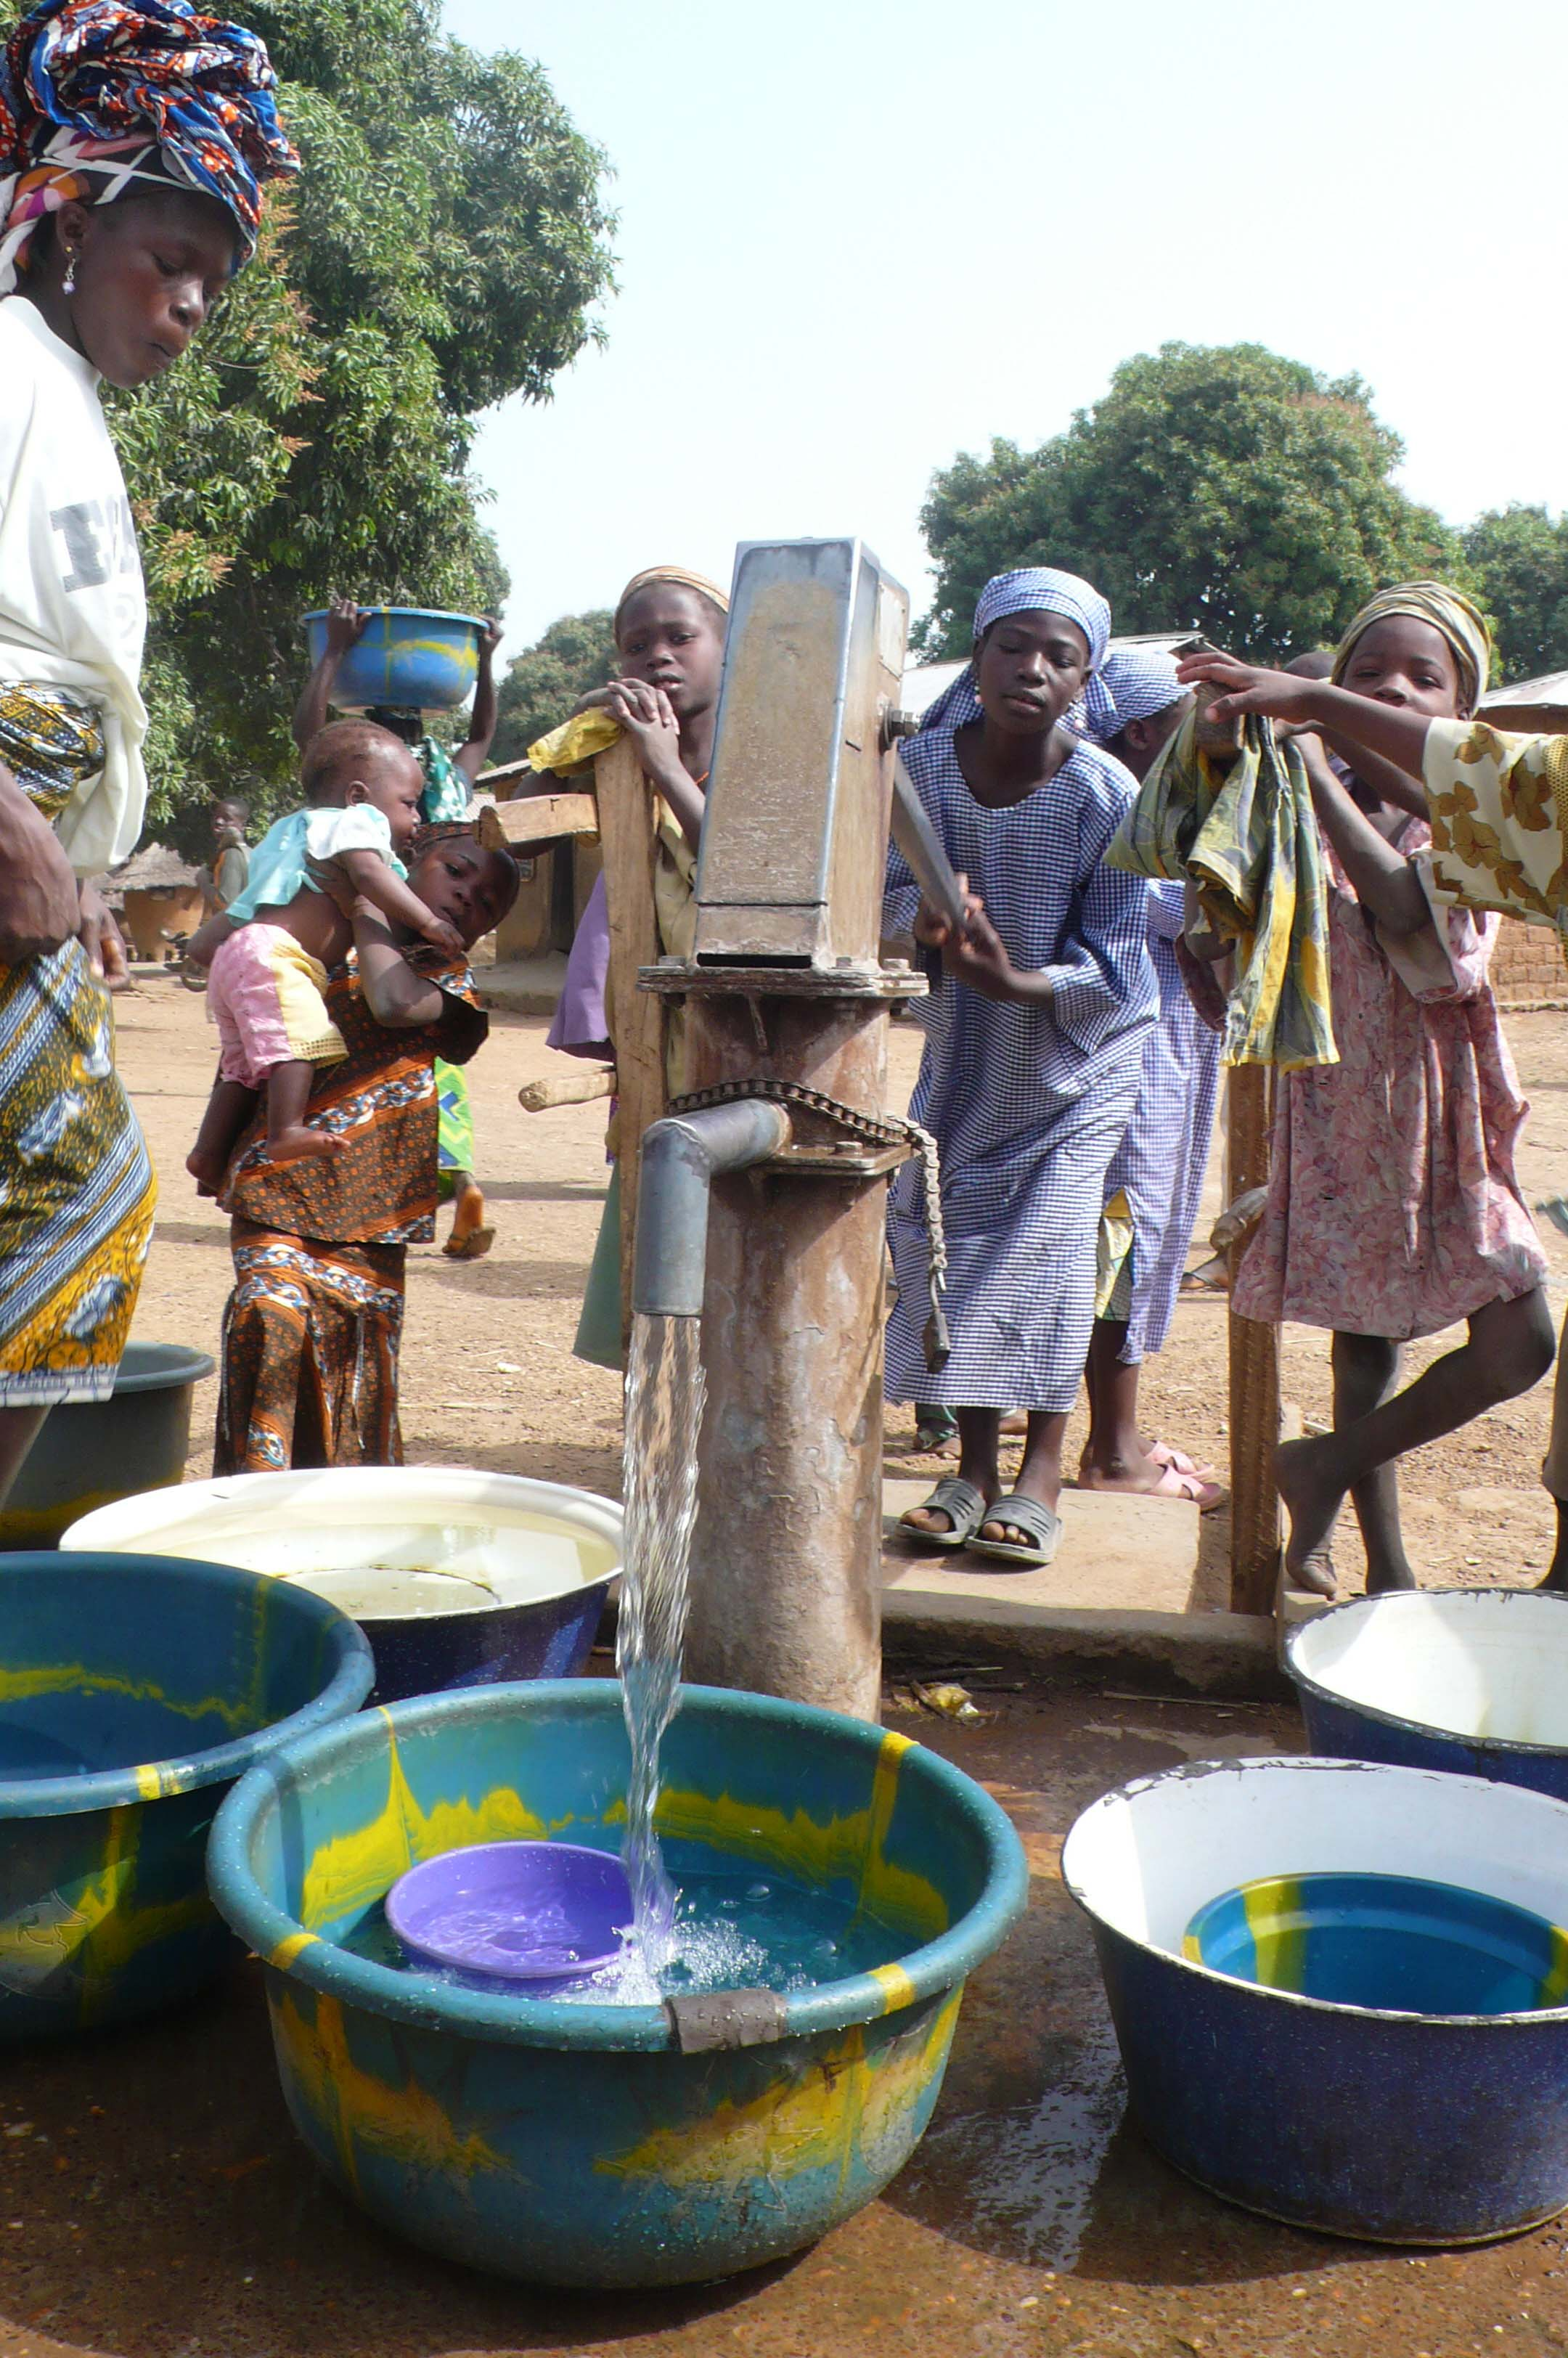 Two wells were bored in 2003 in Lokoto and are now used by all the families to wash, drink and clean.